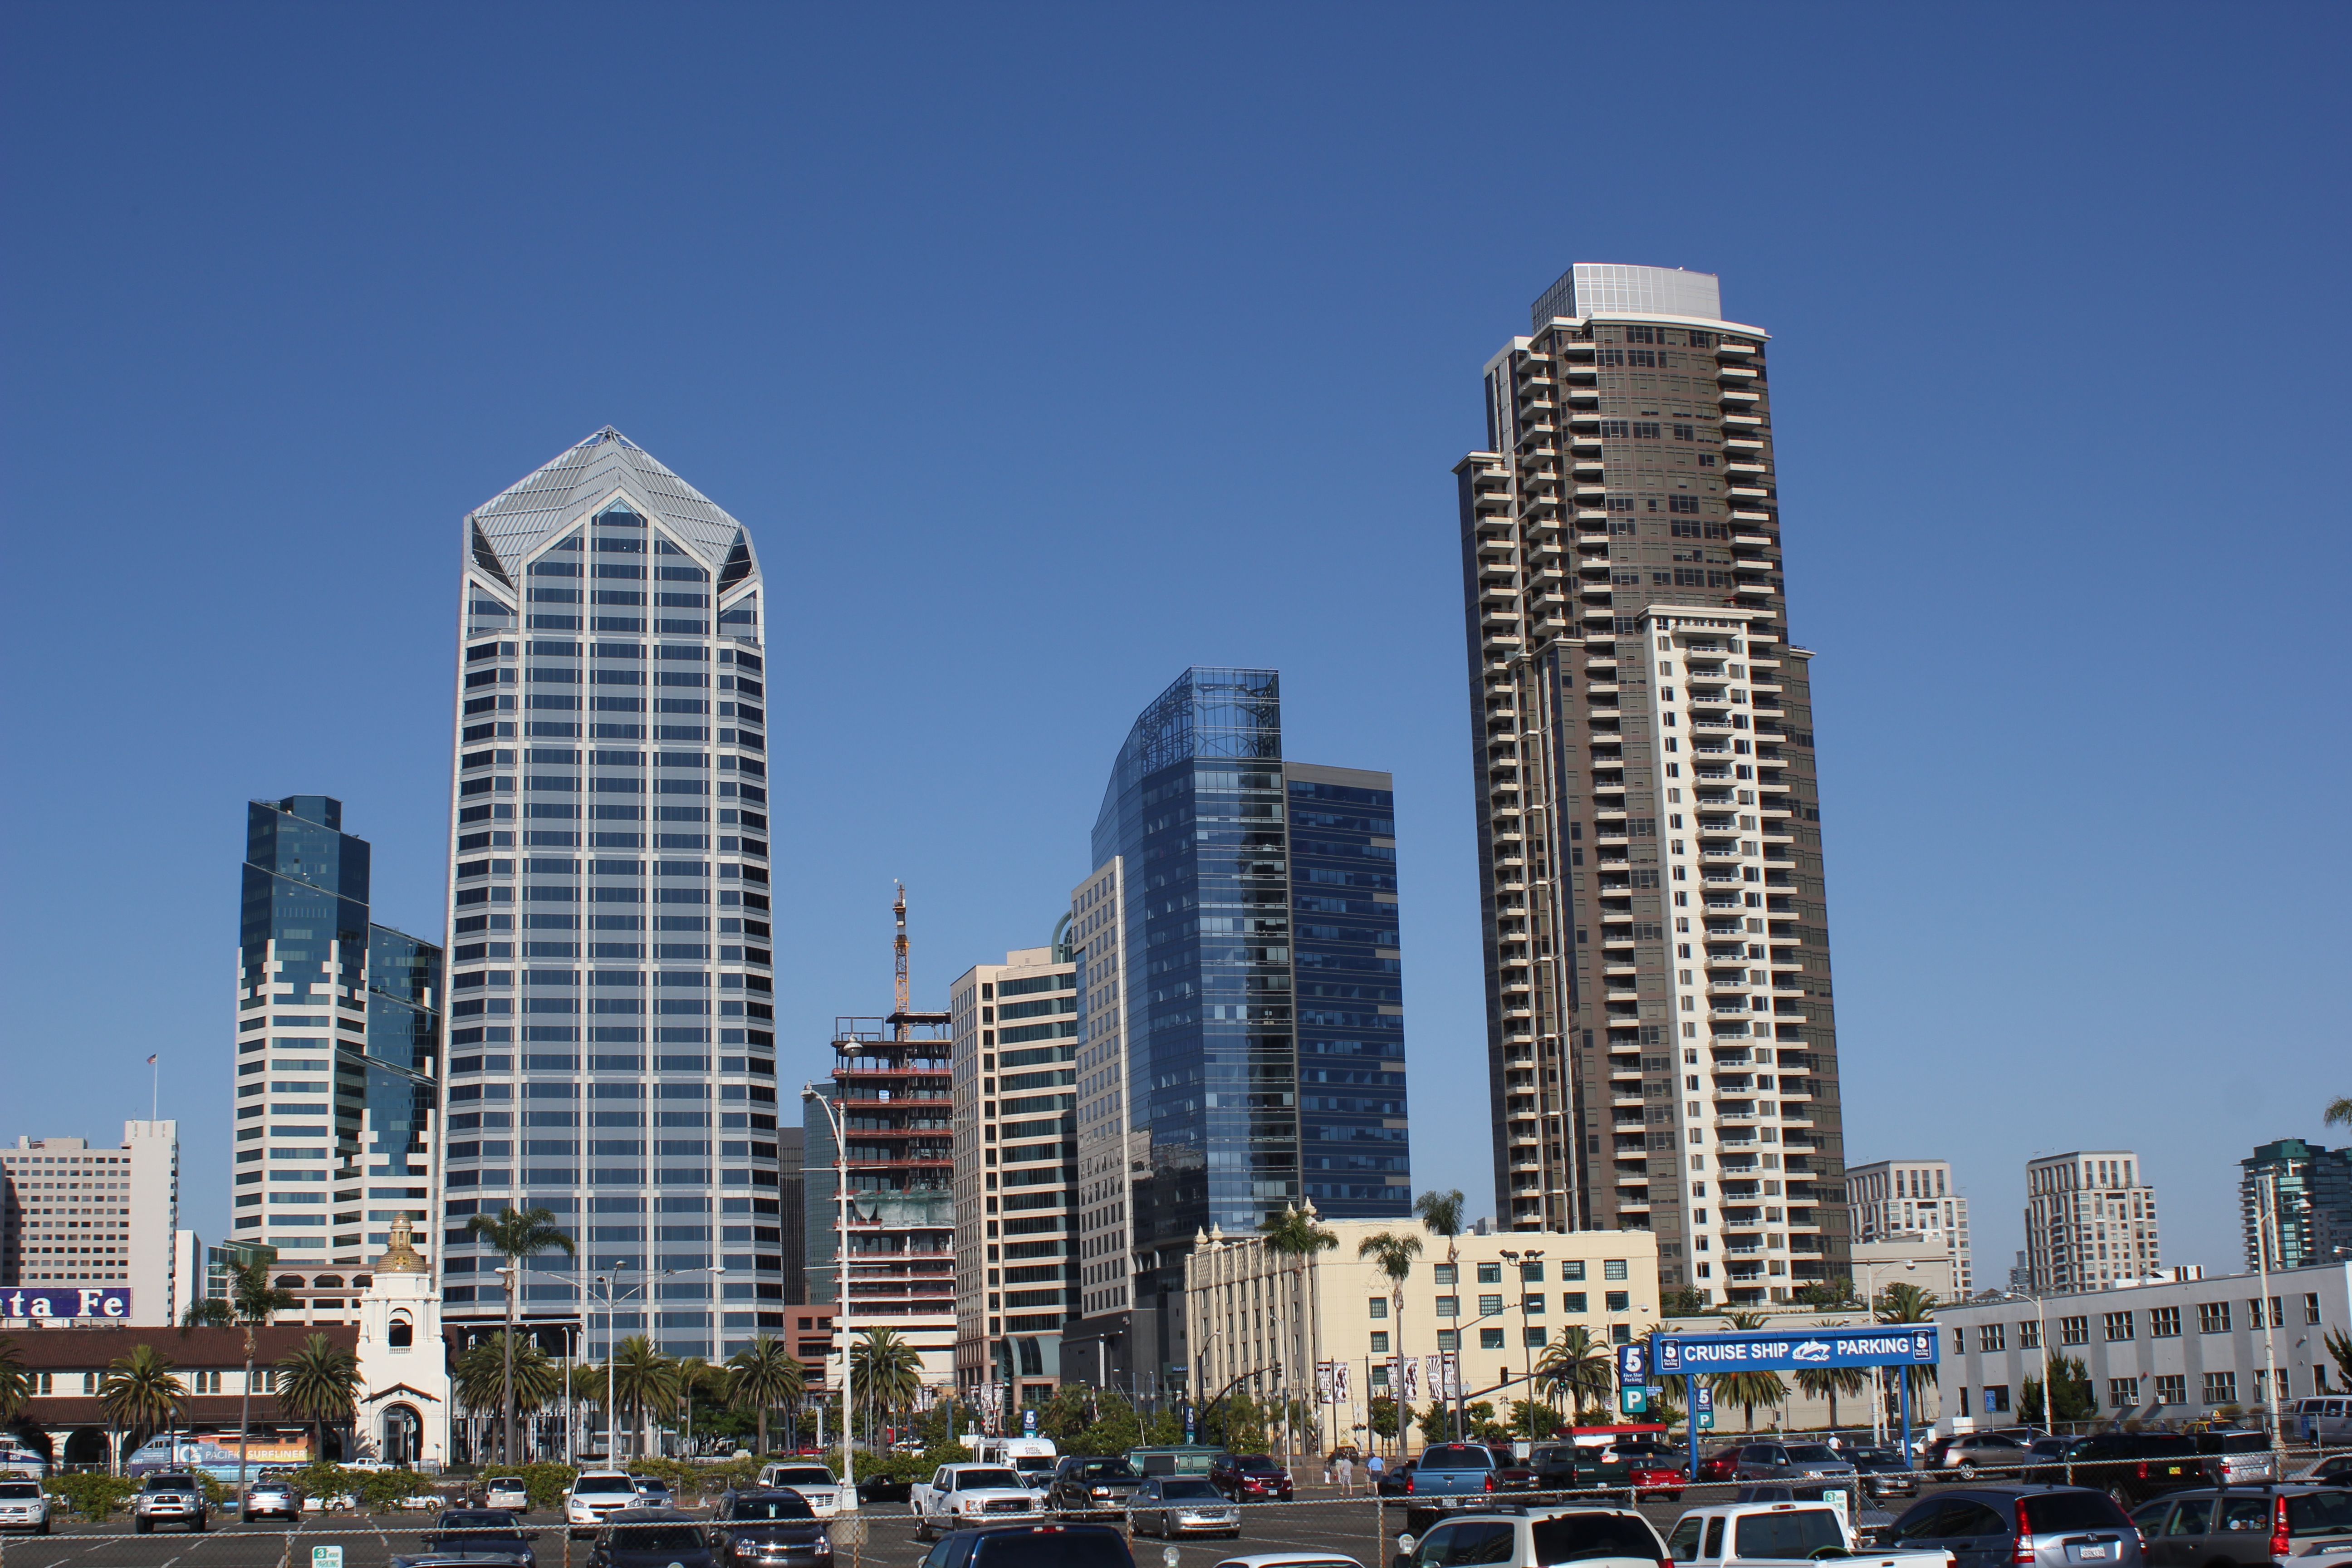 San Diego Hotels With Jacuzzi Room